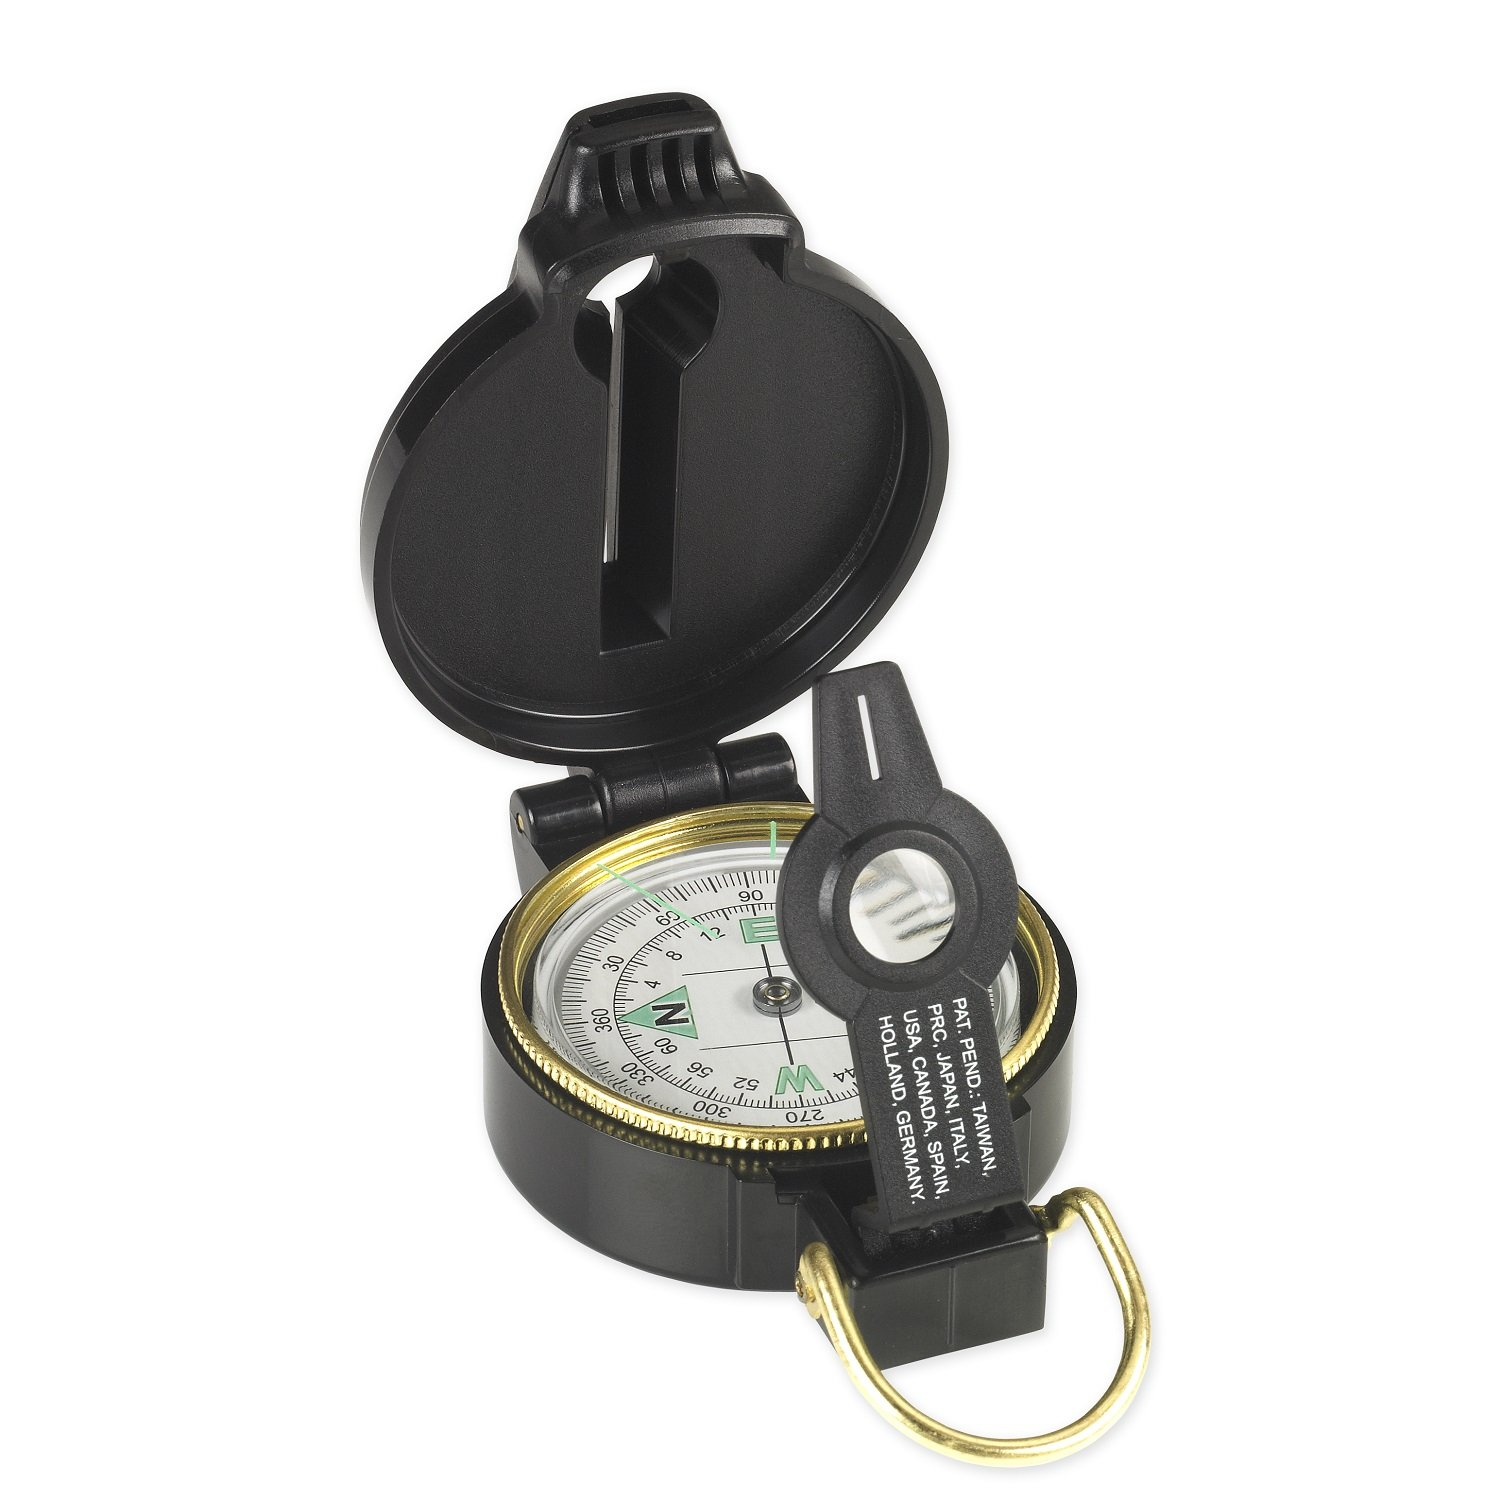 Black Sportsman Supply Inc NduR Lensatic Compass with Whistle 51540